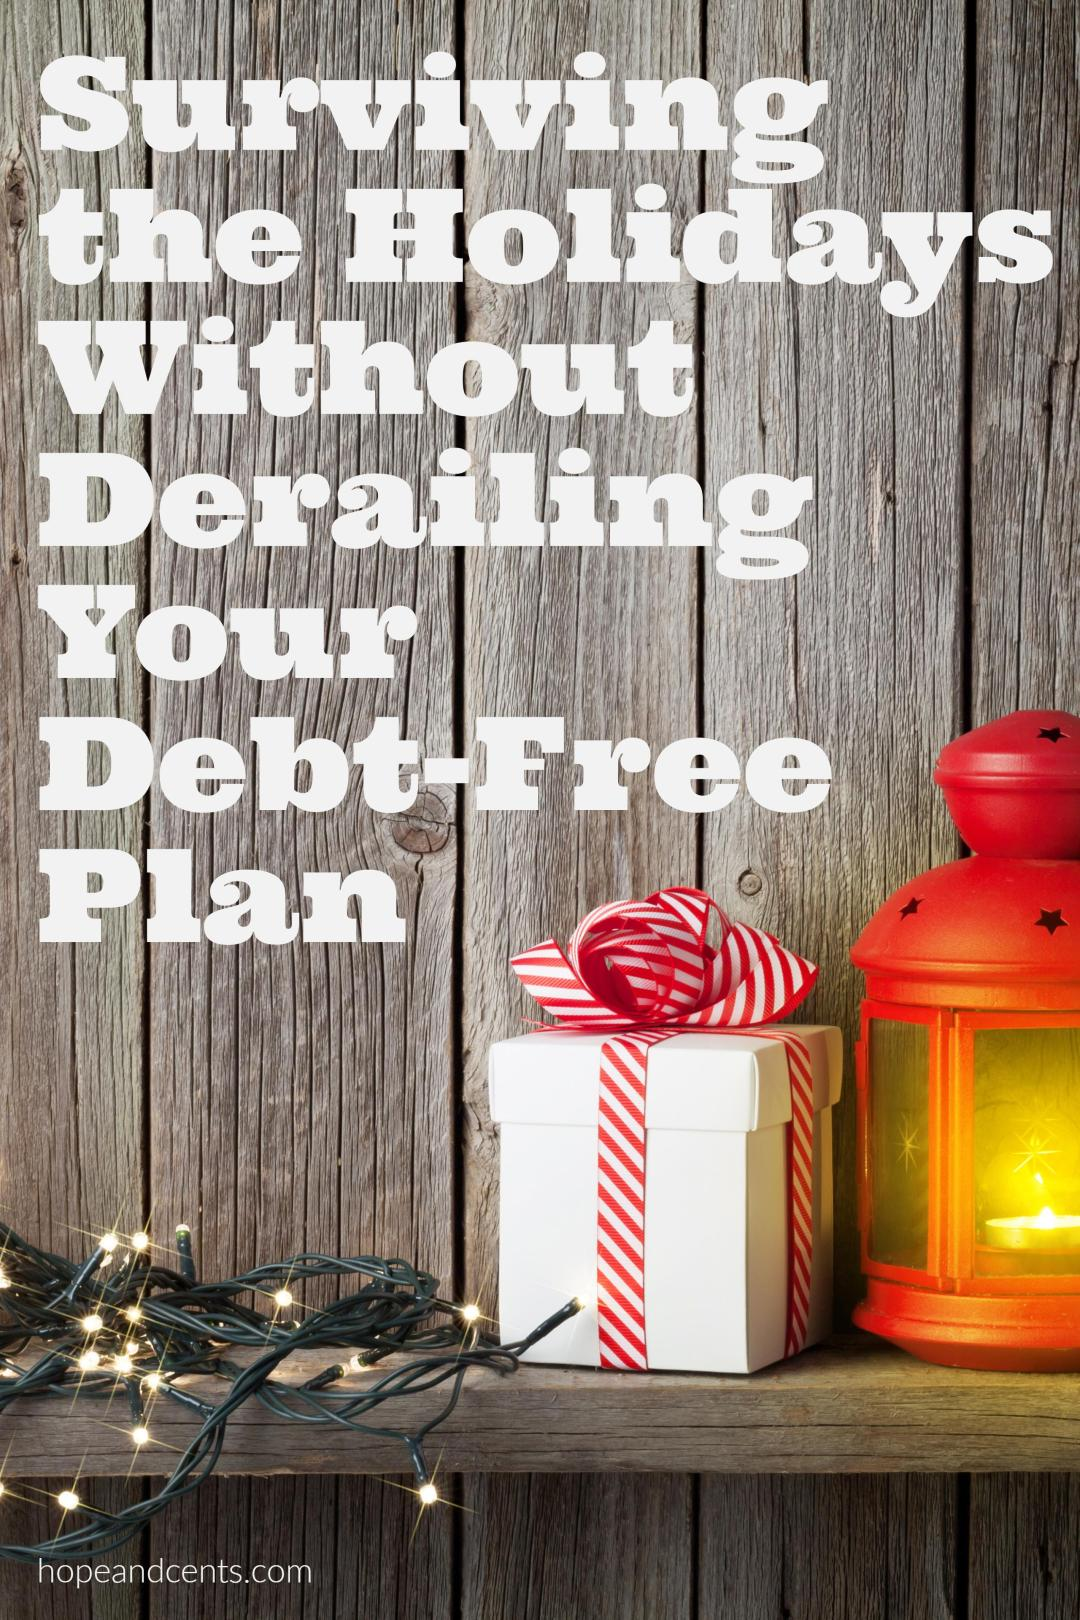 Do the holidays pose a threat to your debt-free journey? You can have a good Christmas and still pay off debt, save money, and be frugal.